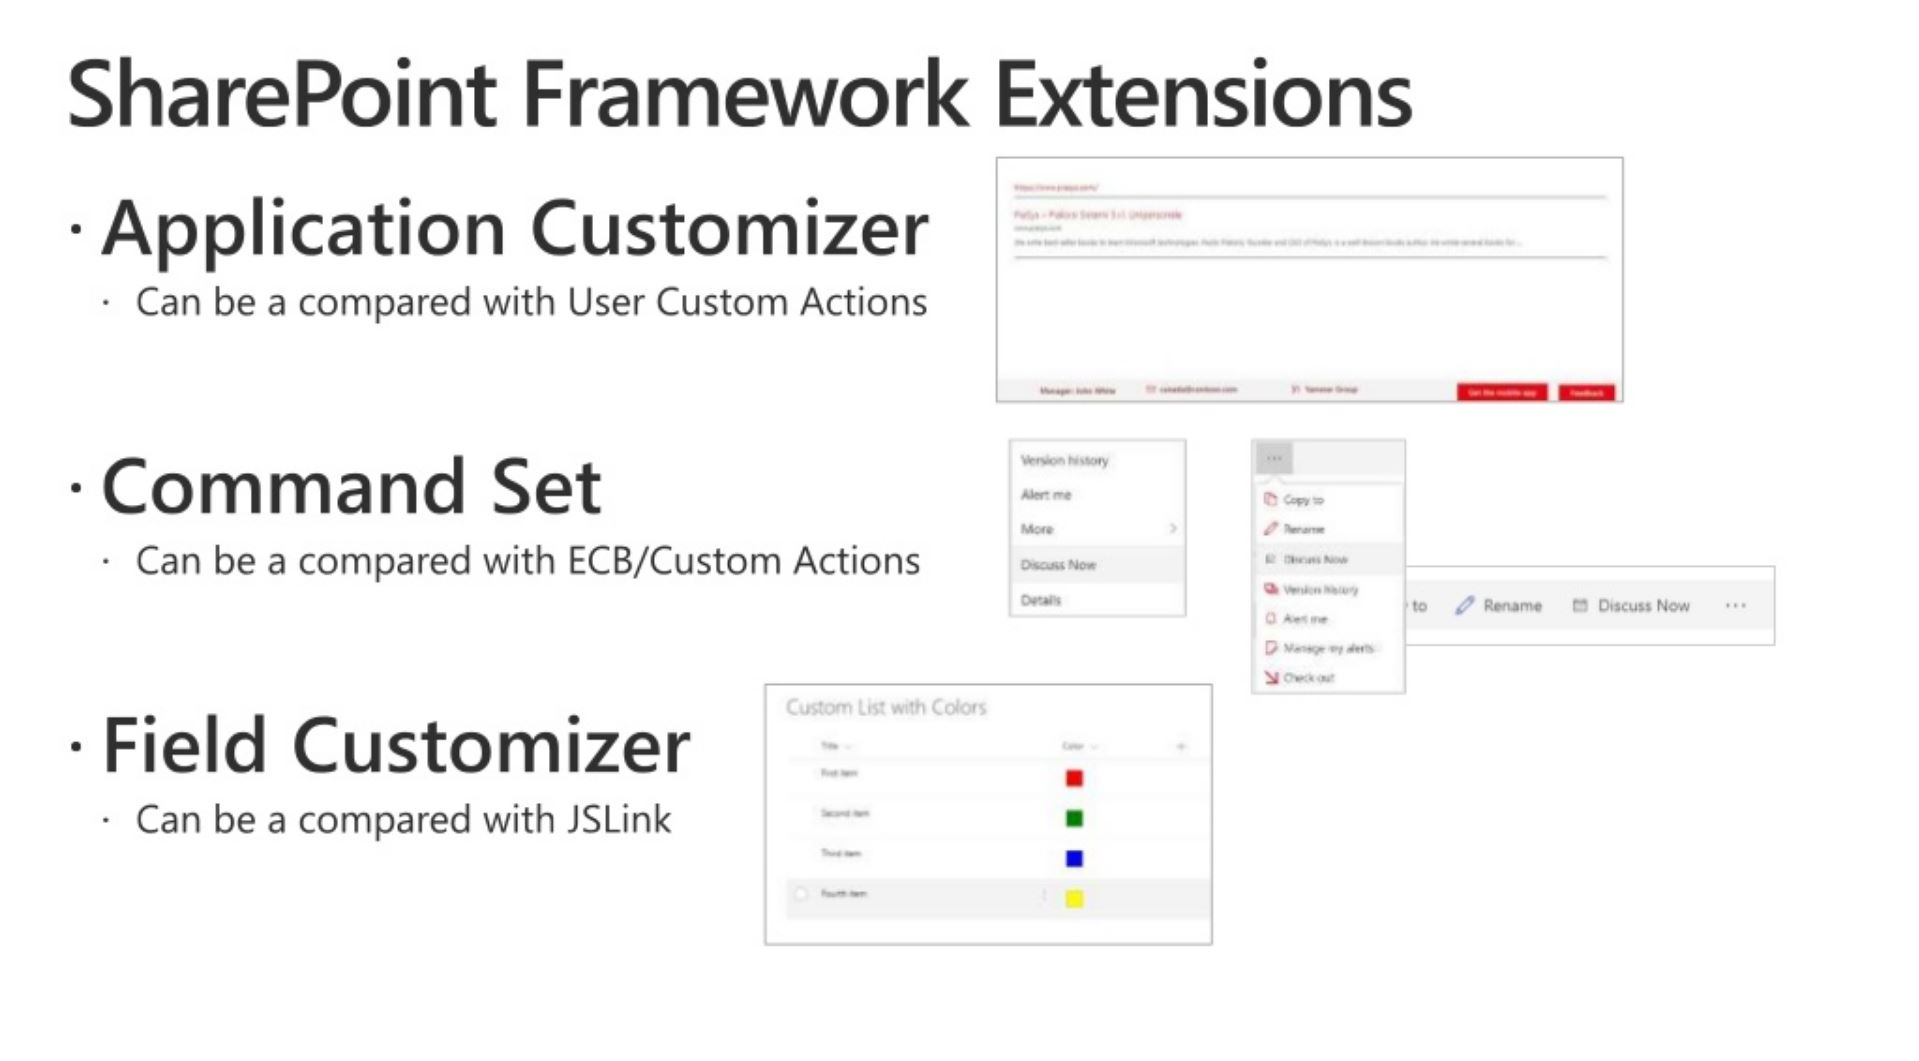 Microsoft Shows How SharePoint Framework Extensions Compare with